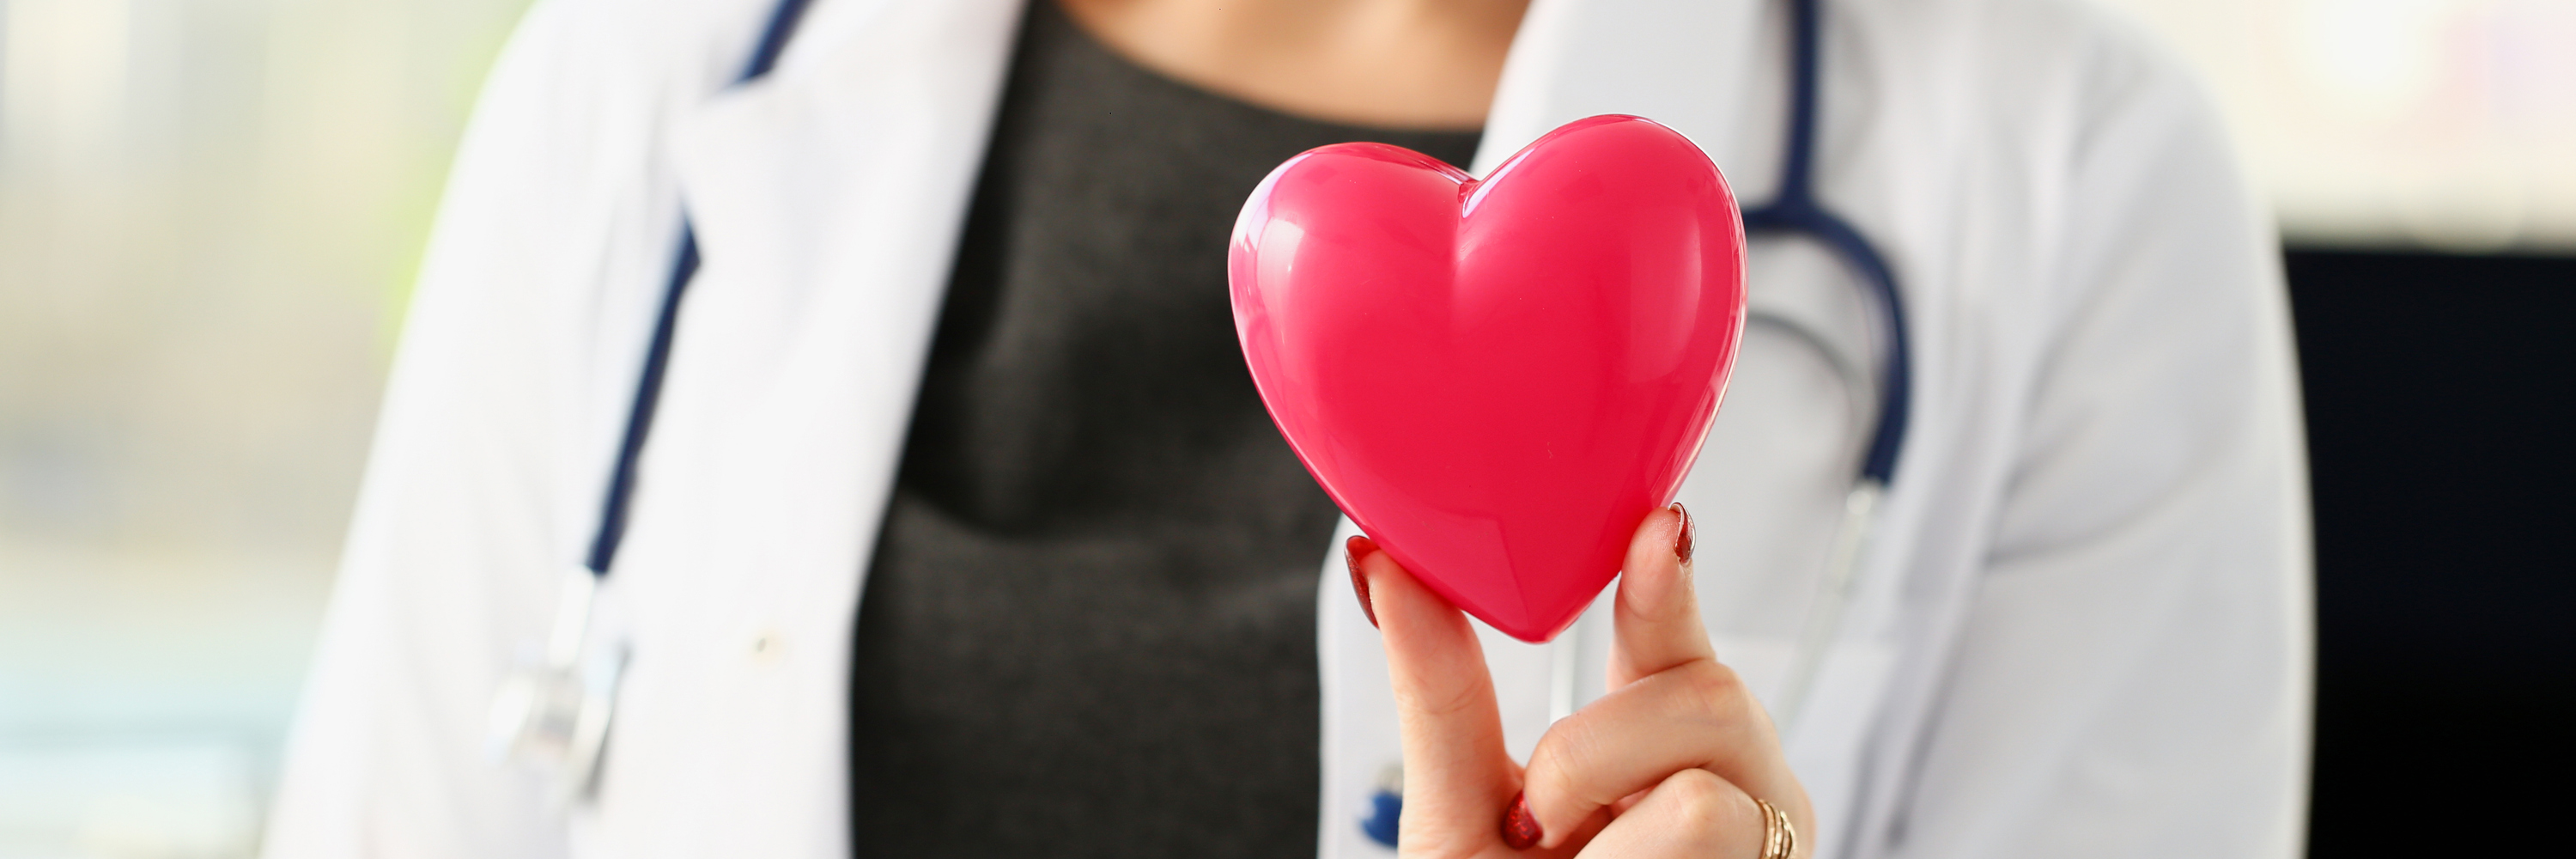 Women and Heart Disease: Dispelling the Myths